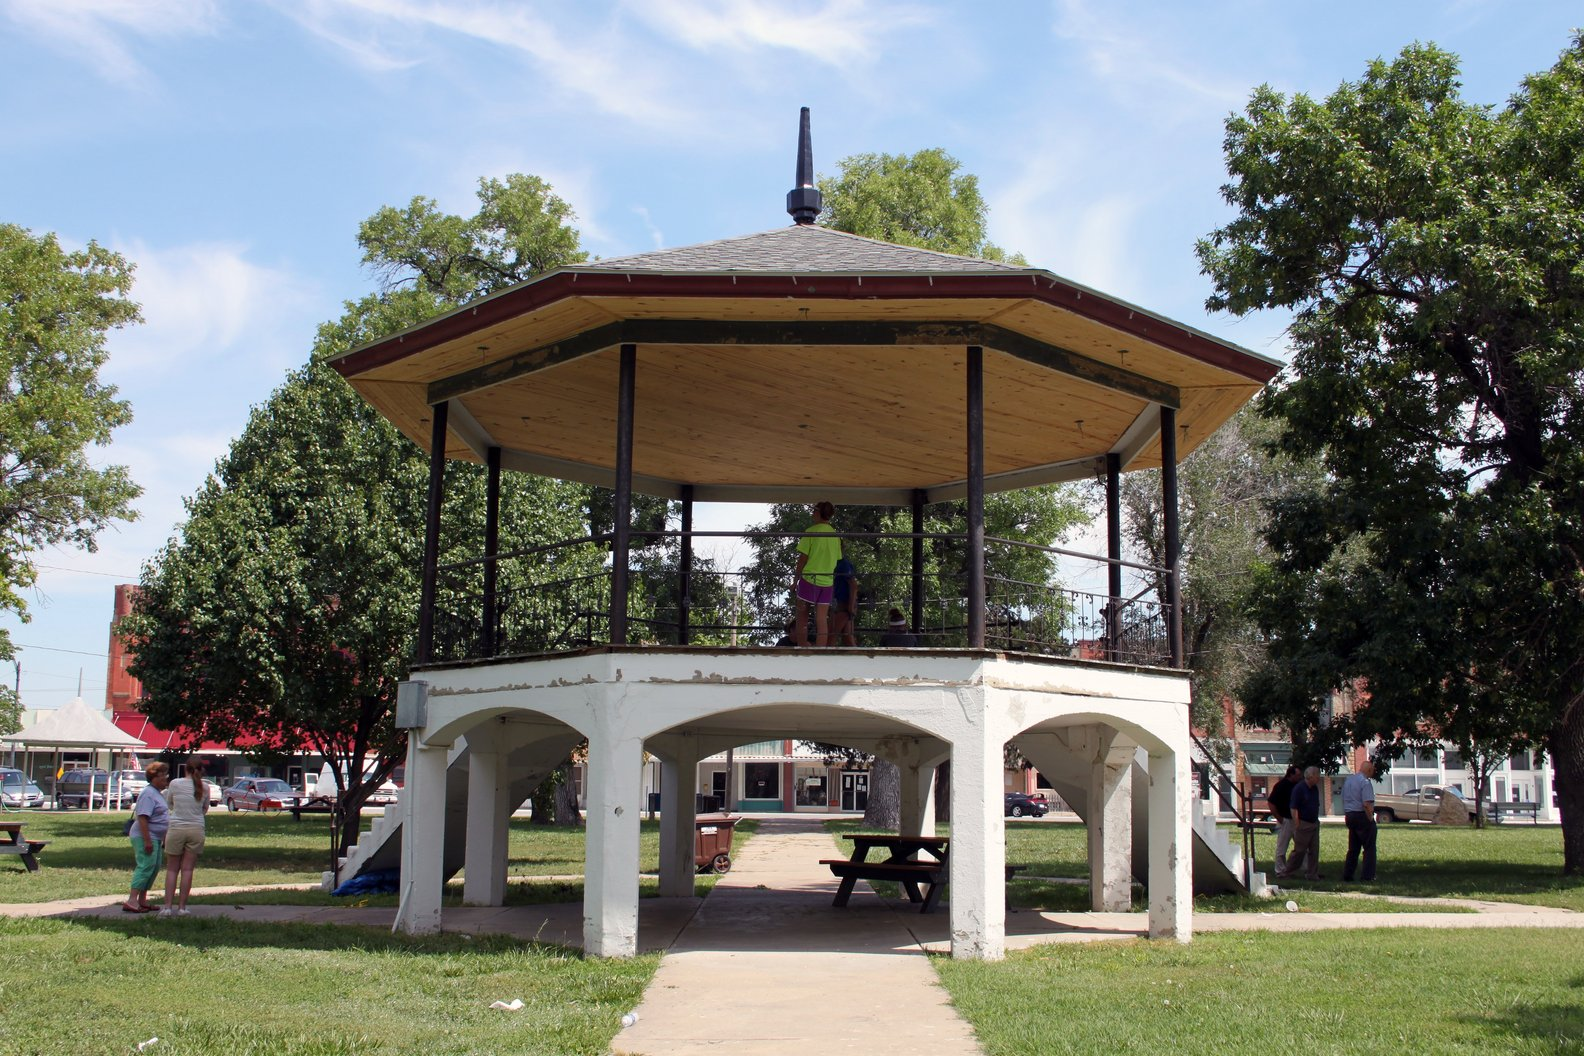 City Square Park Bandstand - 2